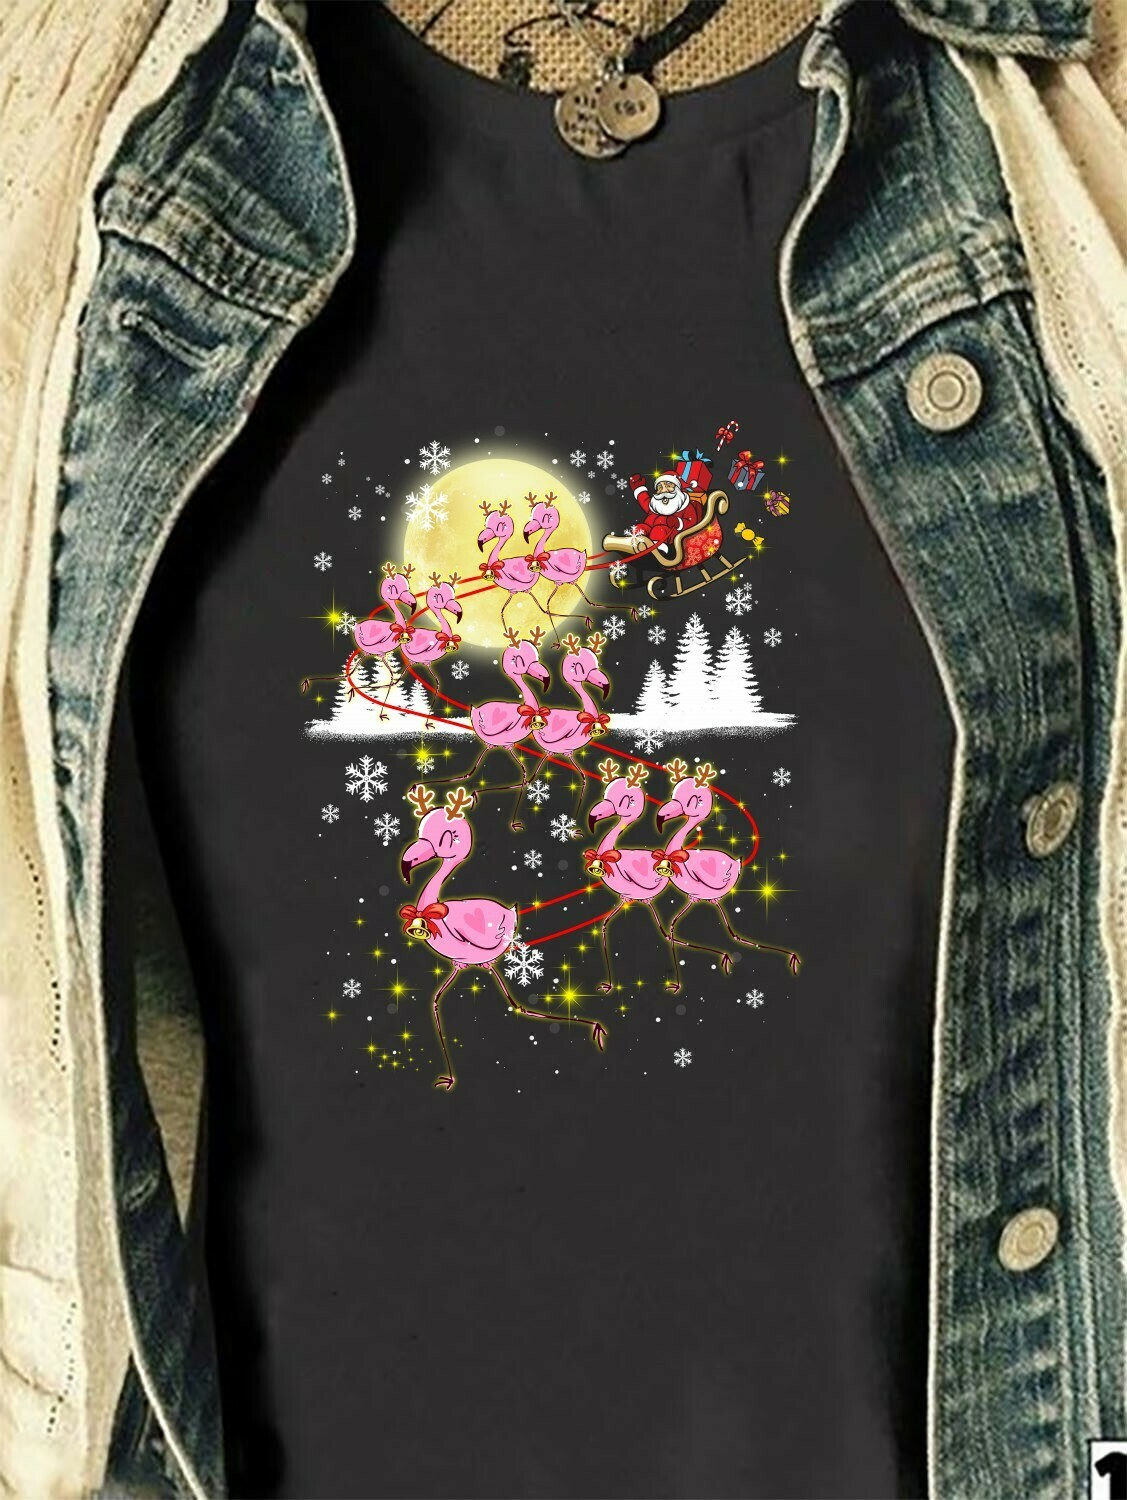 Flamingos Mashup Christmas Santa Claus's Reindeer Lovers Pink Flamingo Family Very Merry Christmas Party Costume Clothing Gifts T-Shirt Long Sleeve Sweatshirt Hoodie Jolly Family Gifts